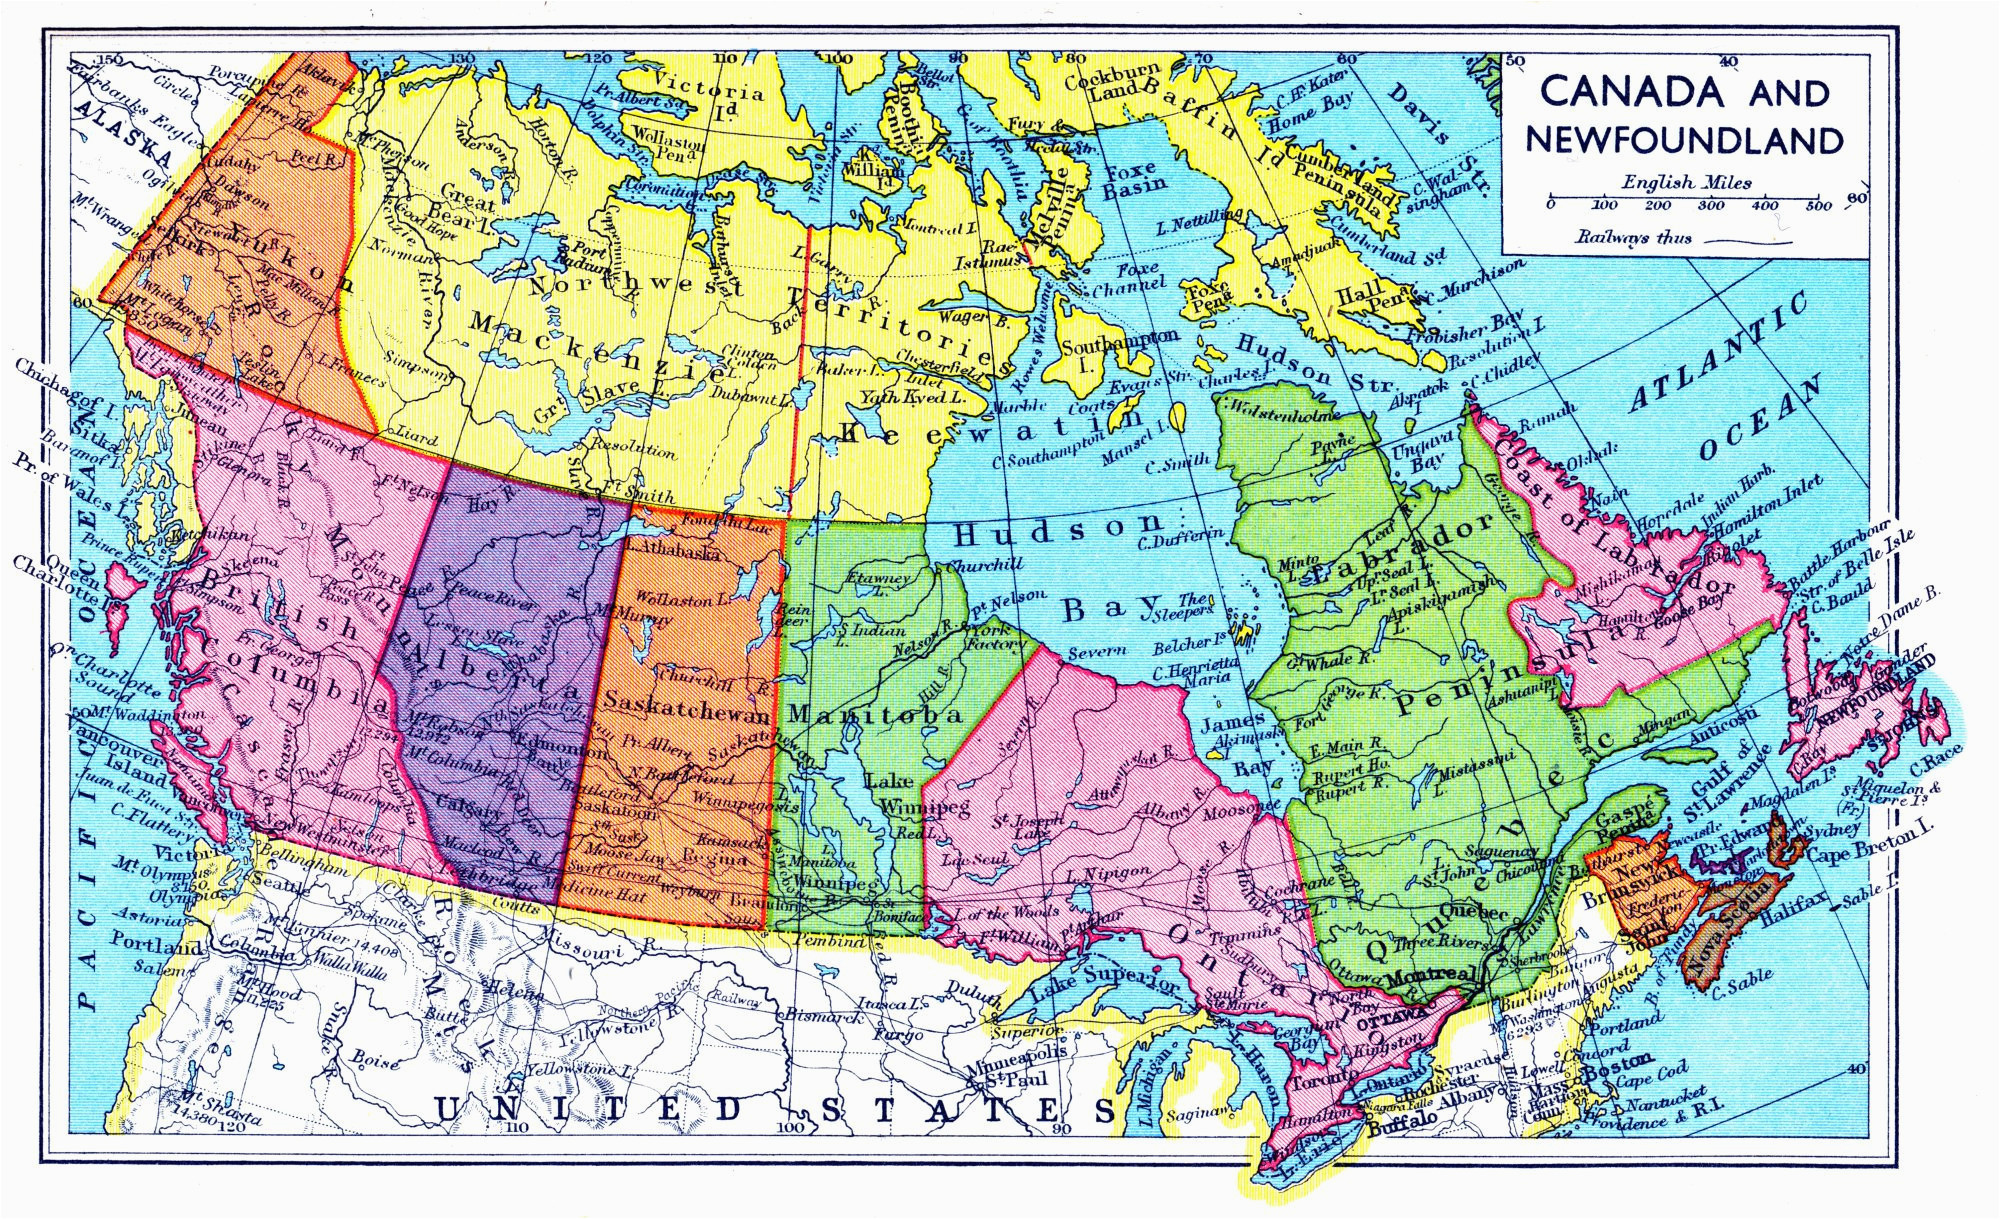 California Earthquake Prediction Map Canada Earthquake Map Pics World Map Floor Puzzle New Map Od Canada